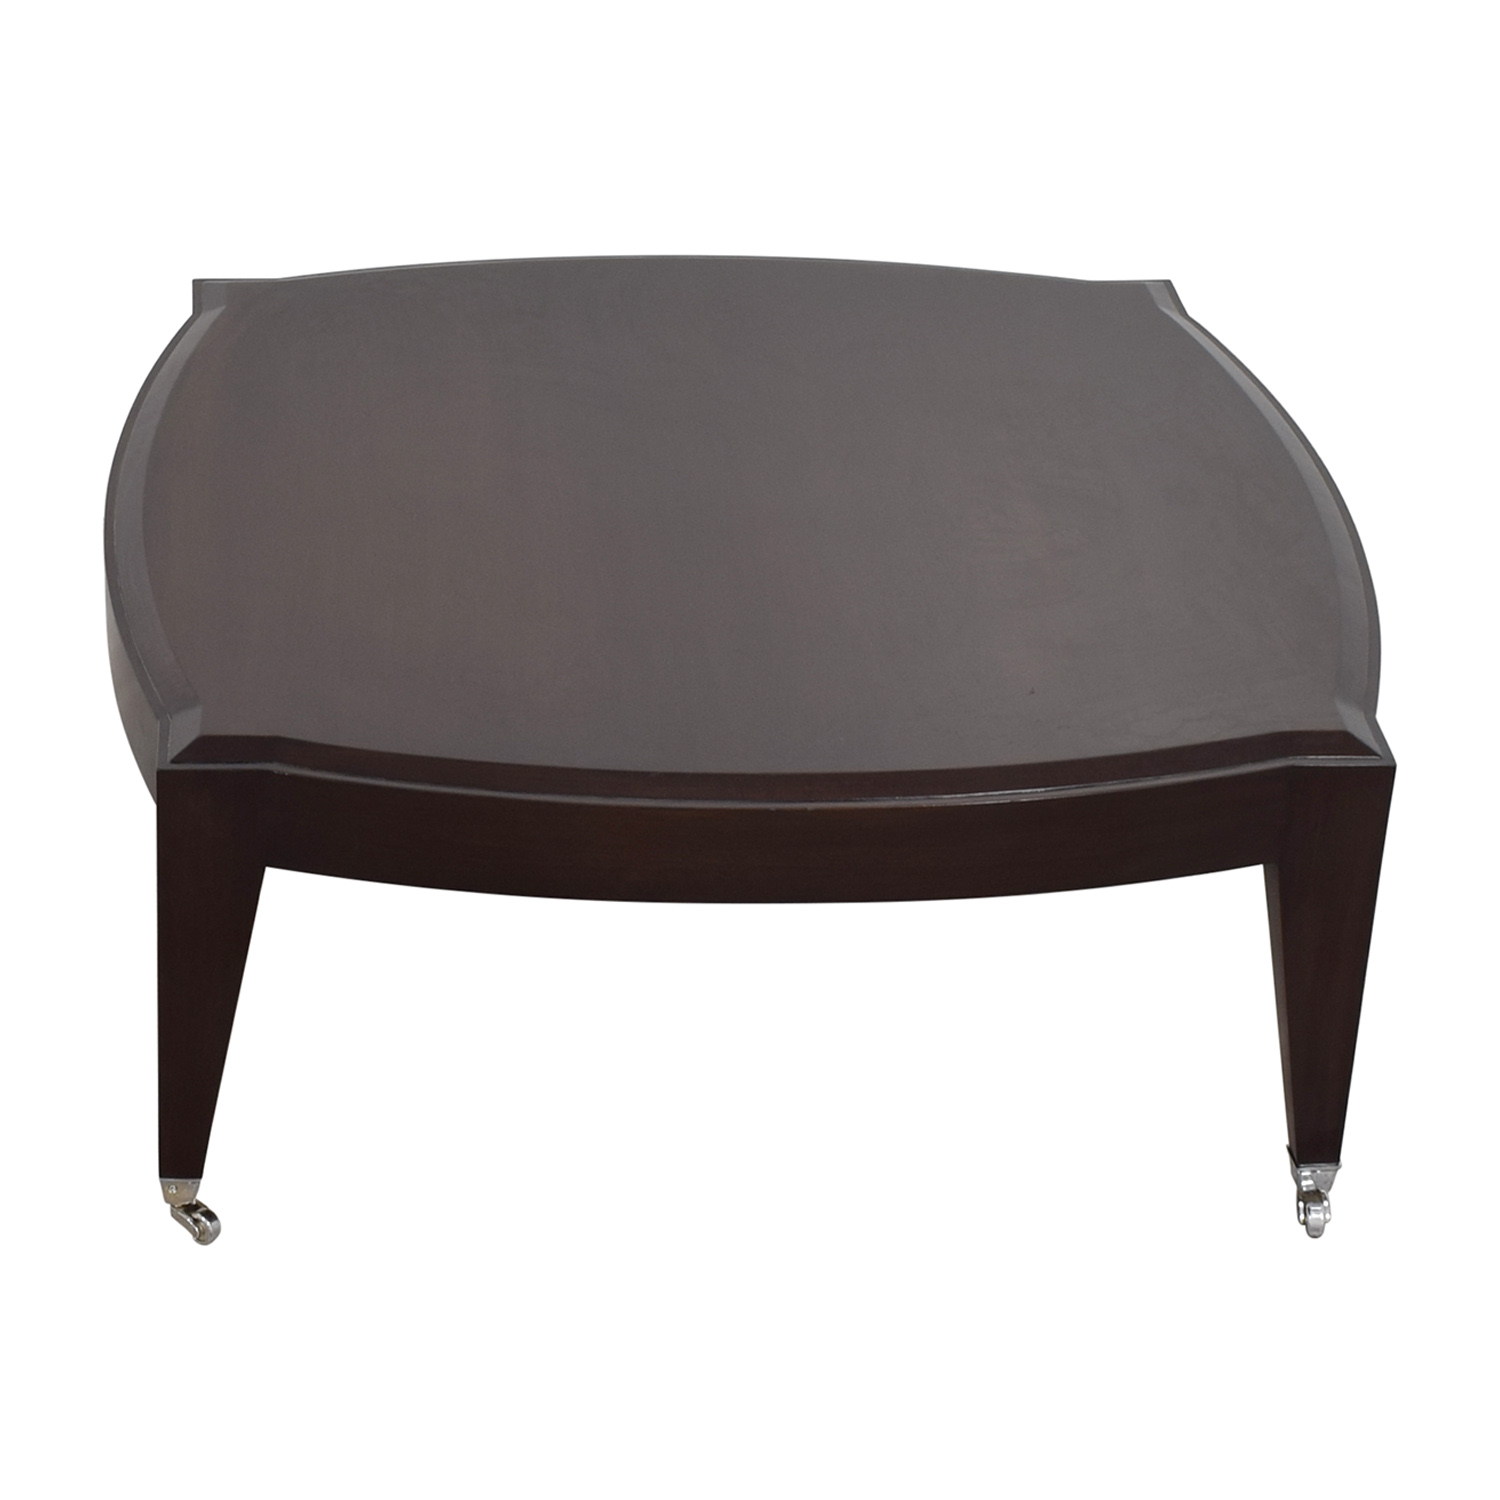 Furniture Masters Furniture Masters Dovetailed Coffee Table nj